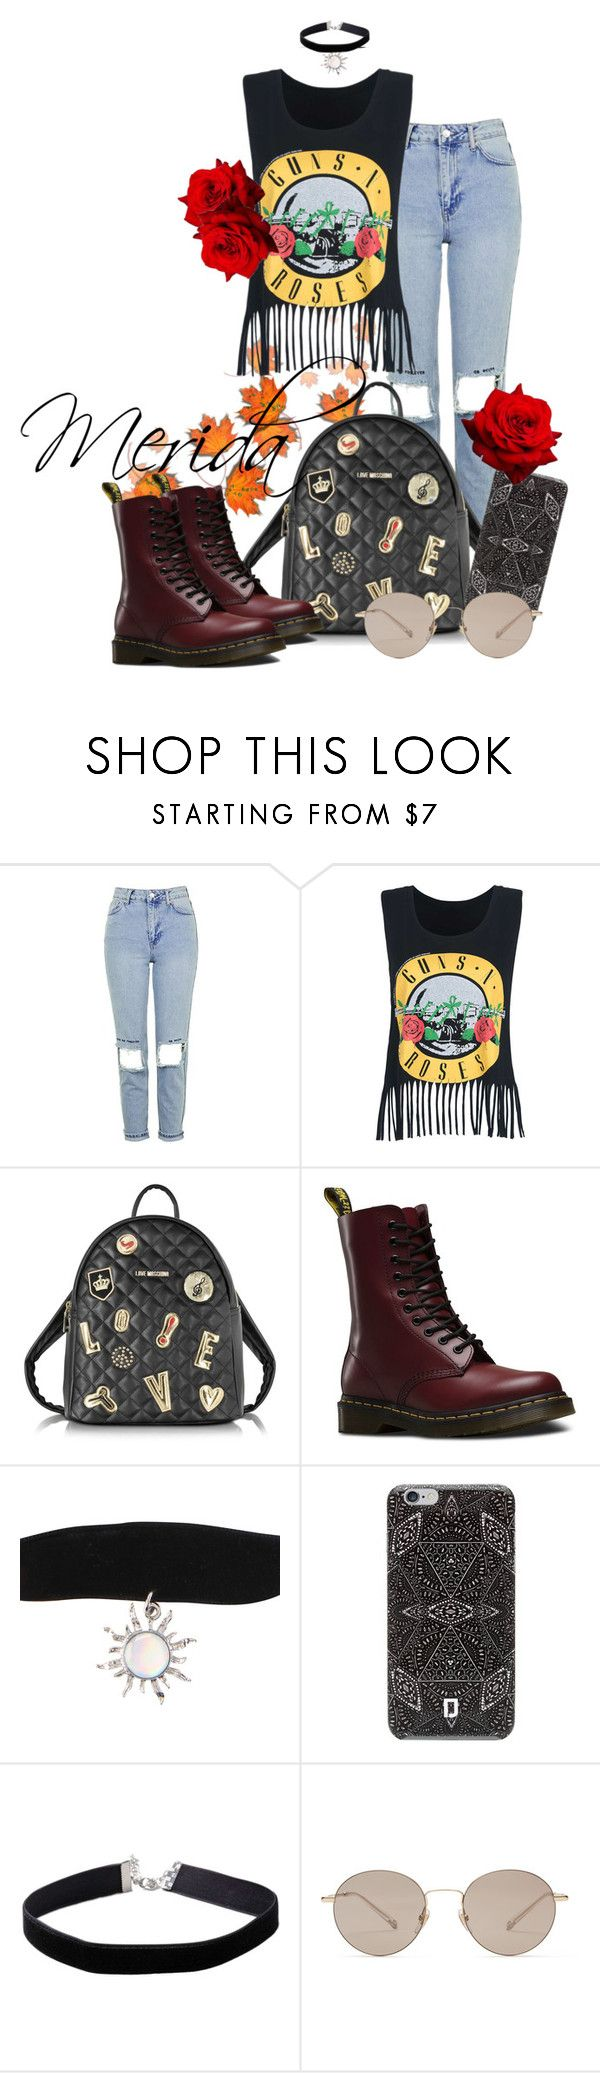 """Merida"" by grraciie-386 on Polyvore featuring Topshop, Love Moschino, Dr. Martens, DANNIJO, Miss Selfridge and Gucci"